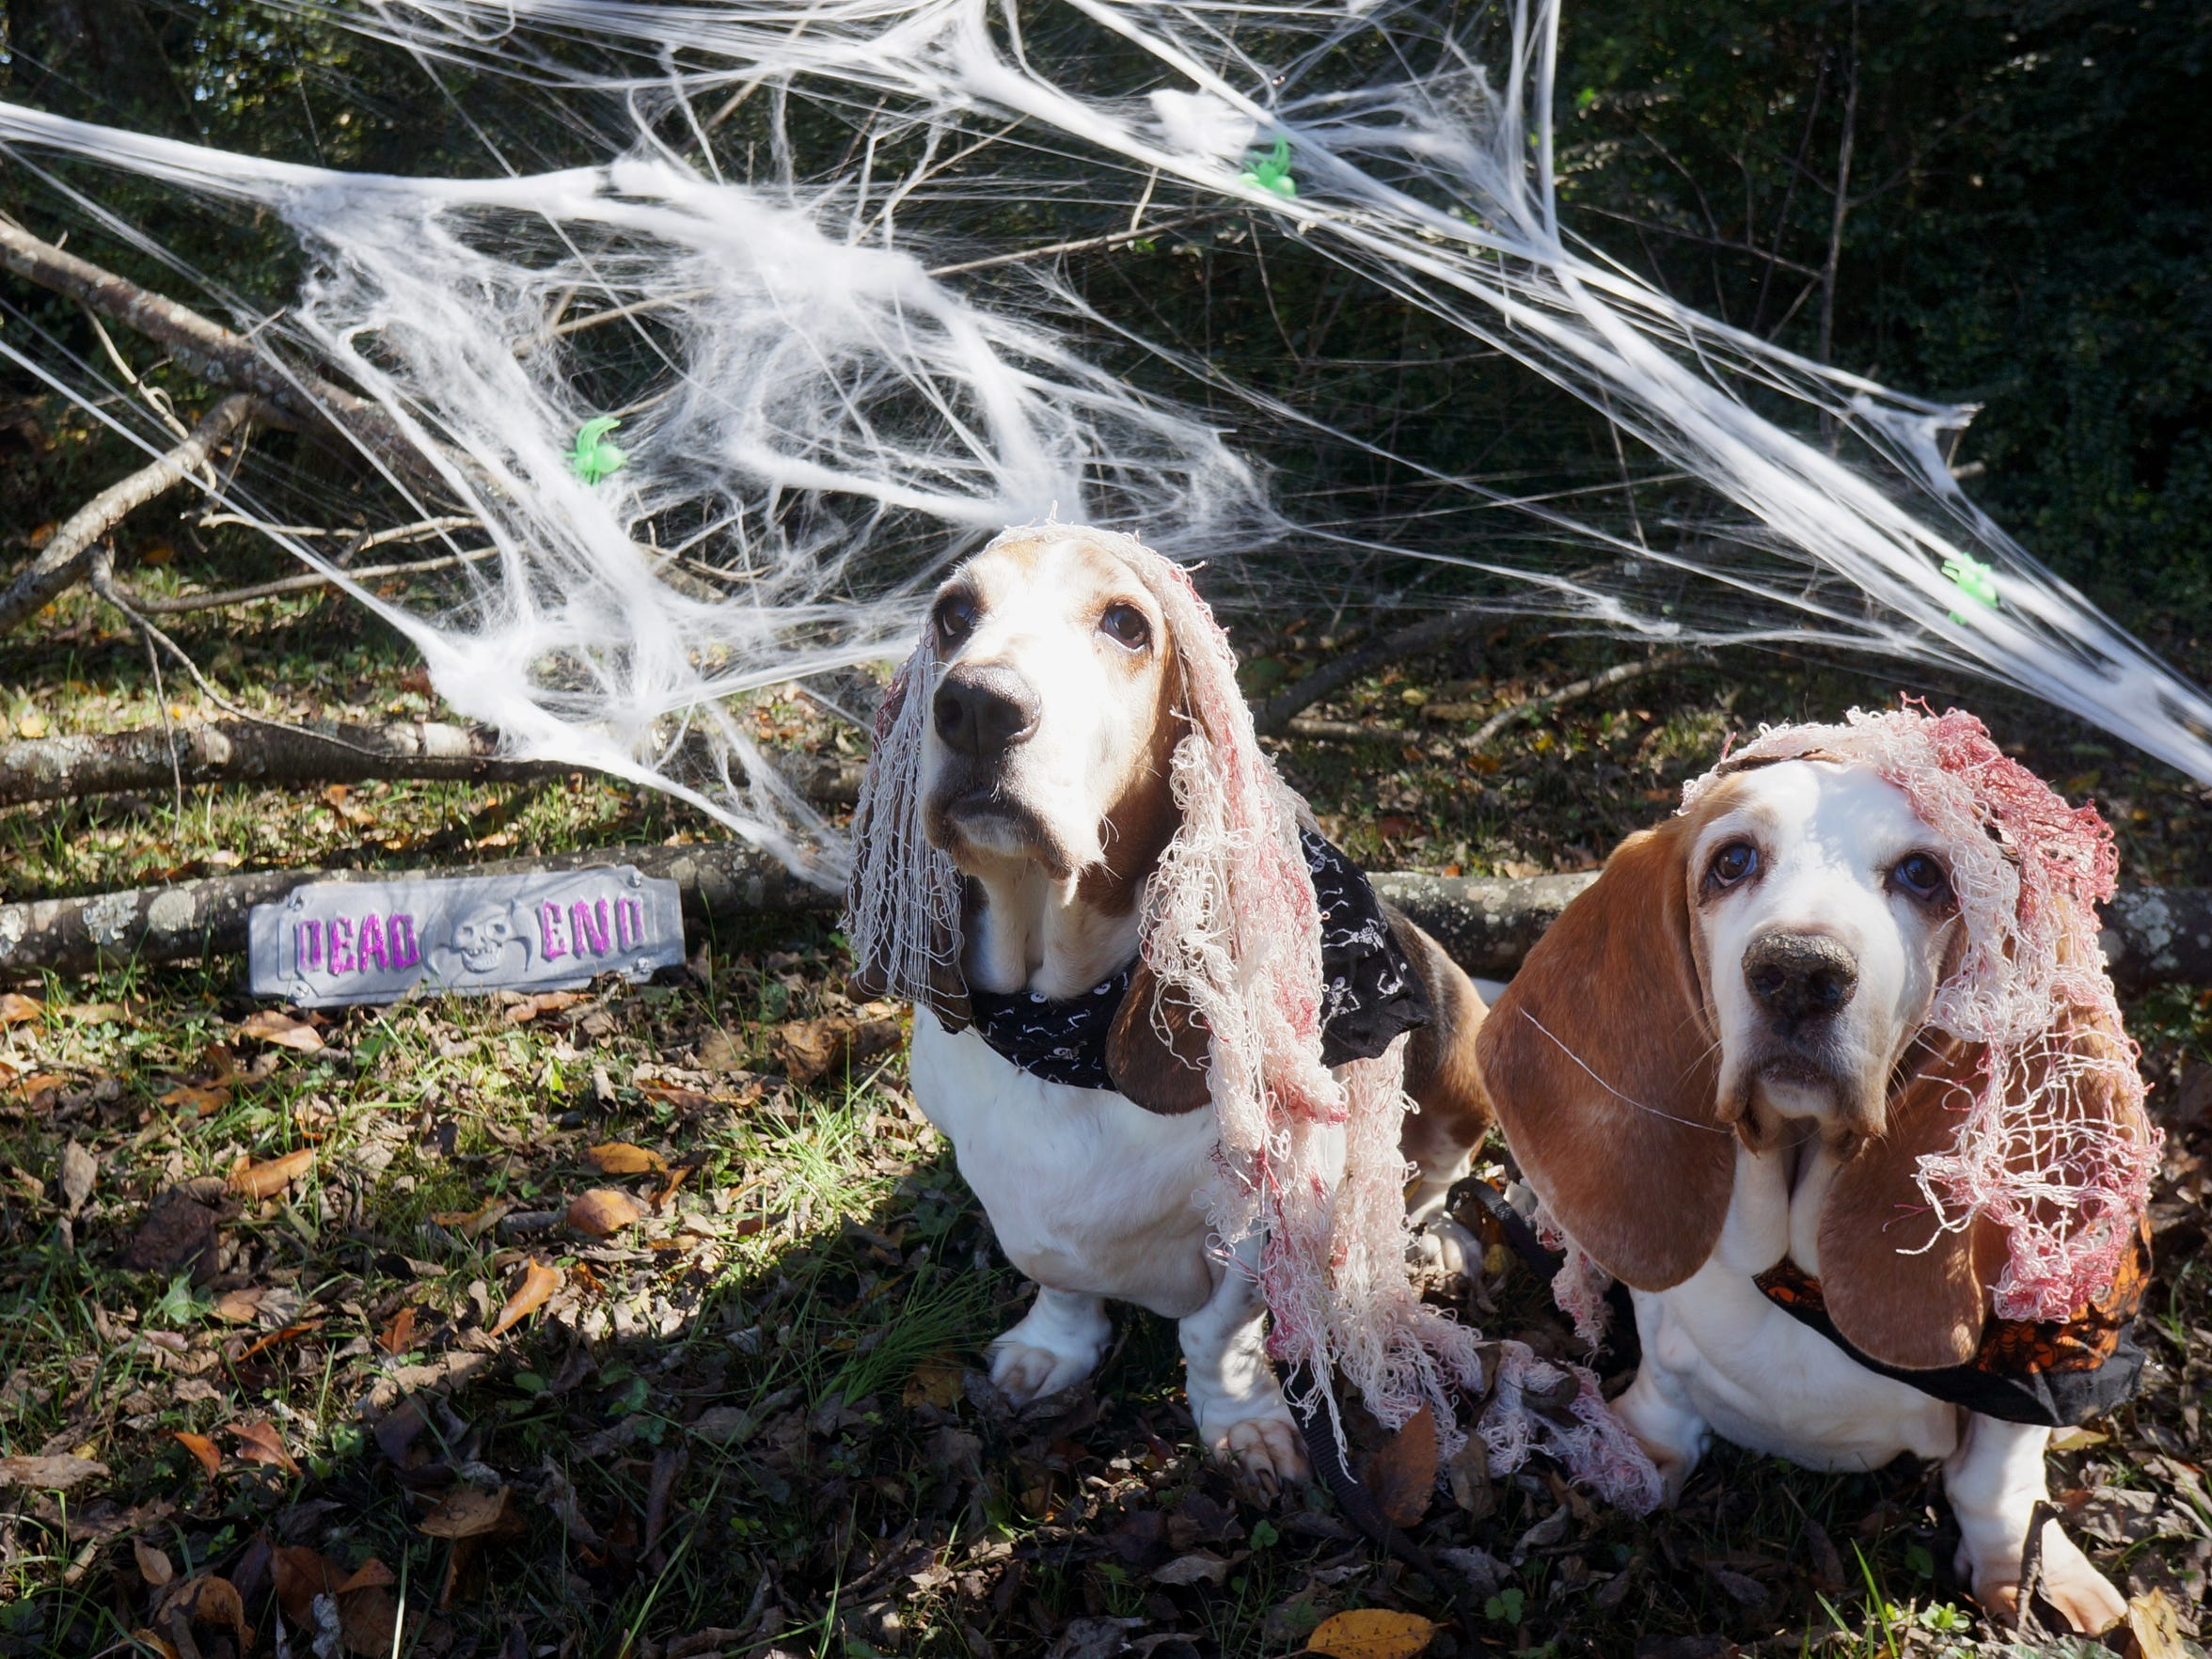 Doll up your dogs and bring them to the annual Youth Empowerment through Arts and Humanities Zombie Walk on Saturday.